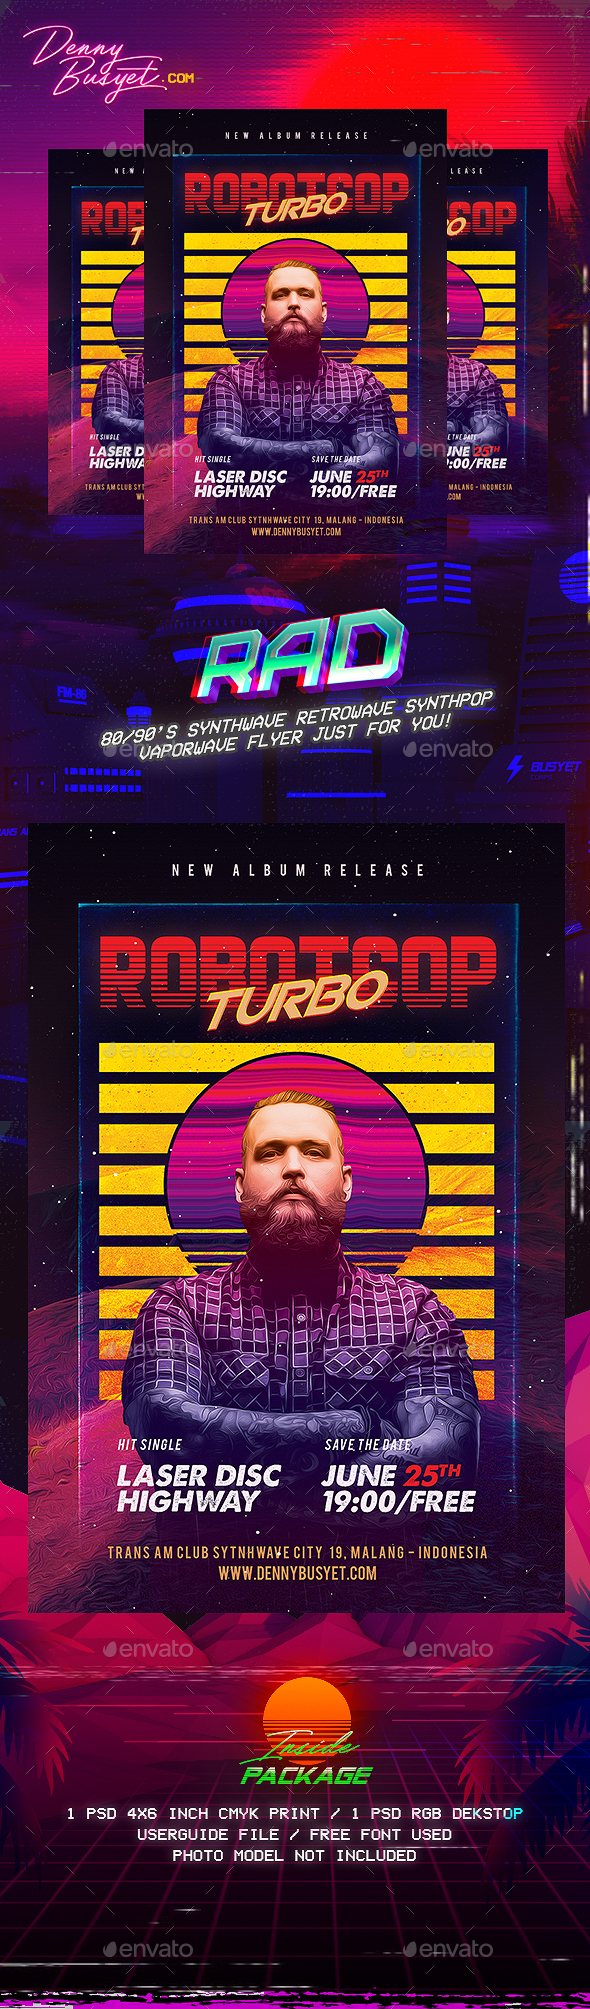 Robotcop Turbo Retro 80's Synthwave Flyer - Events Flyers